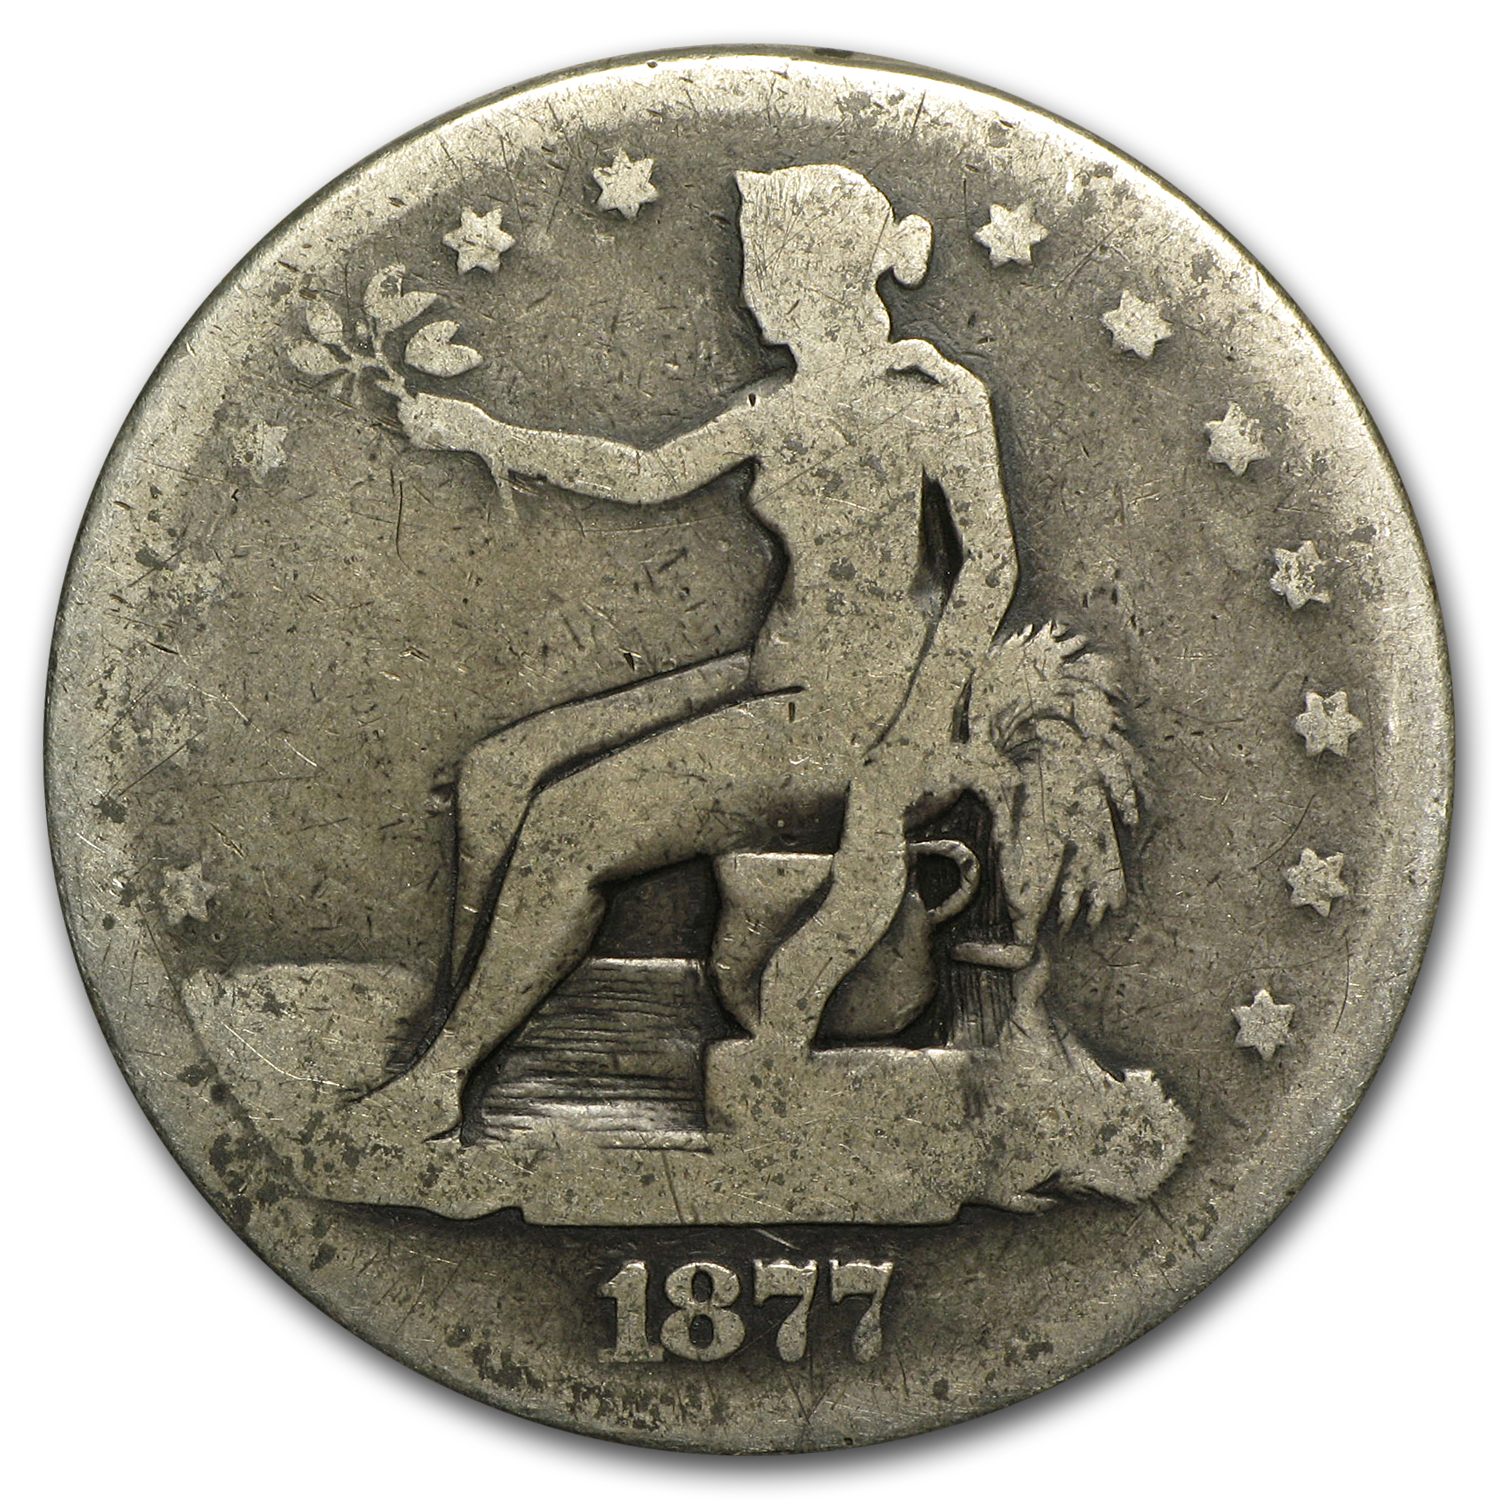 1877 Trade Dollar - Potty Dollar Scarce